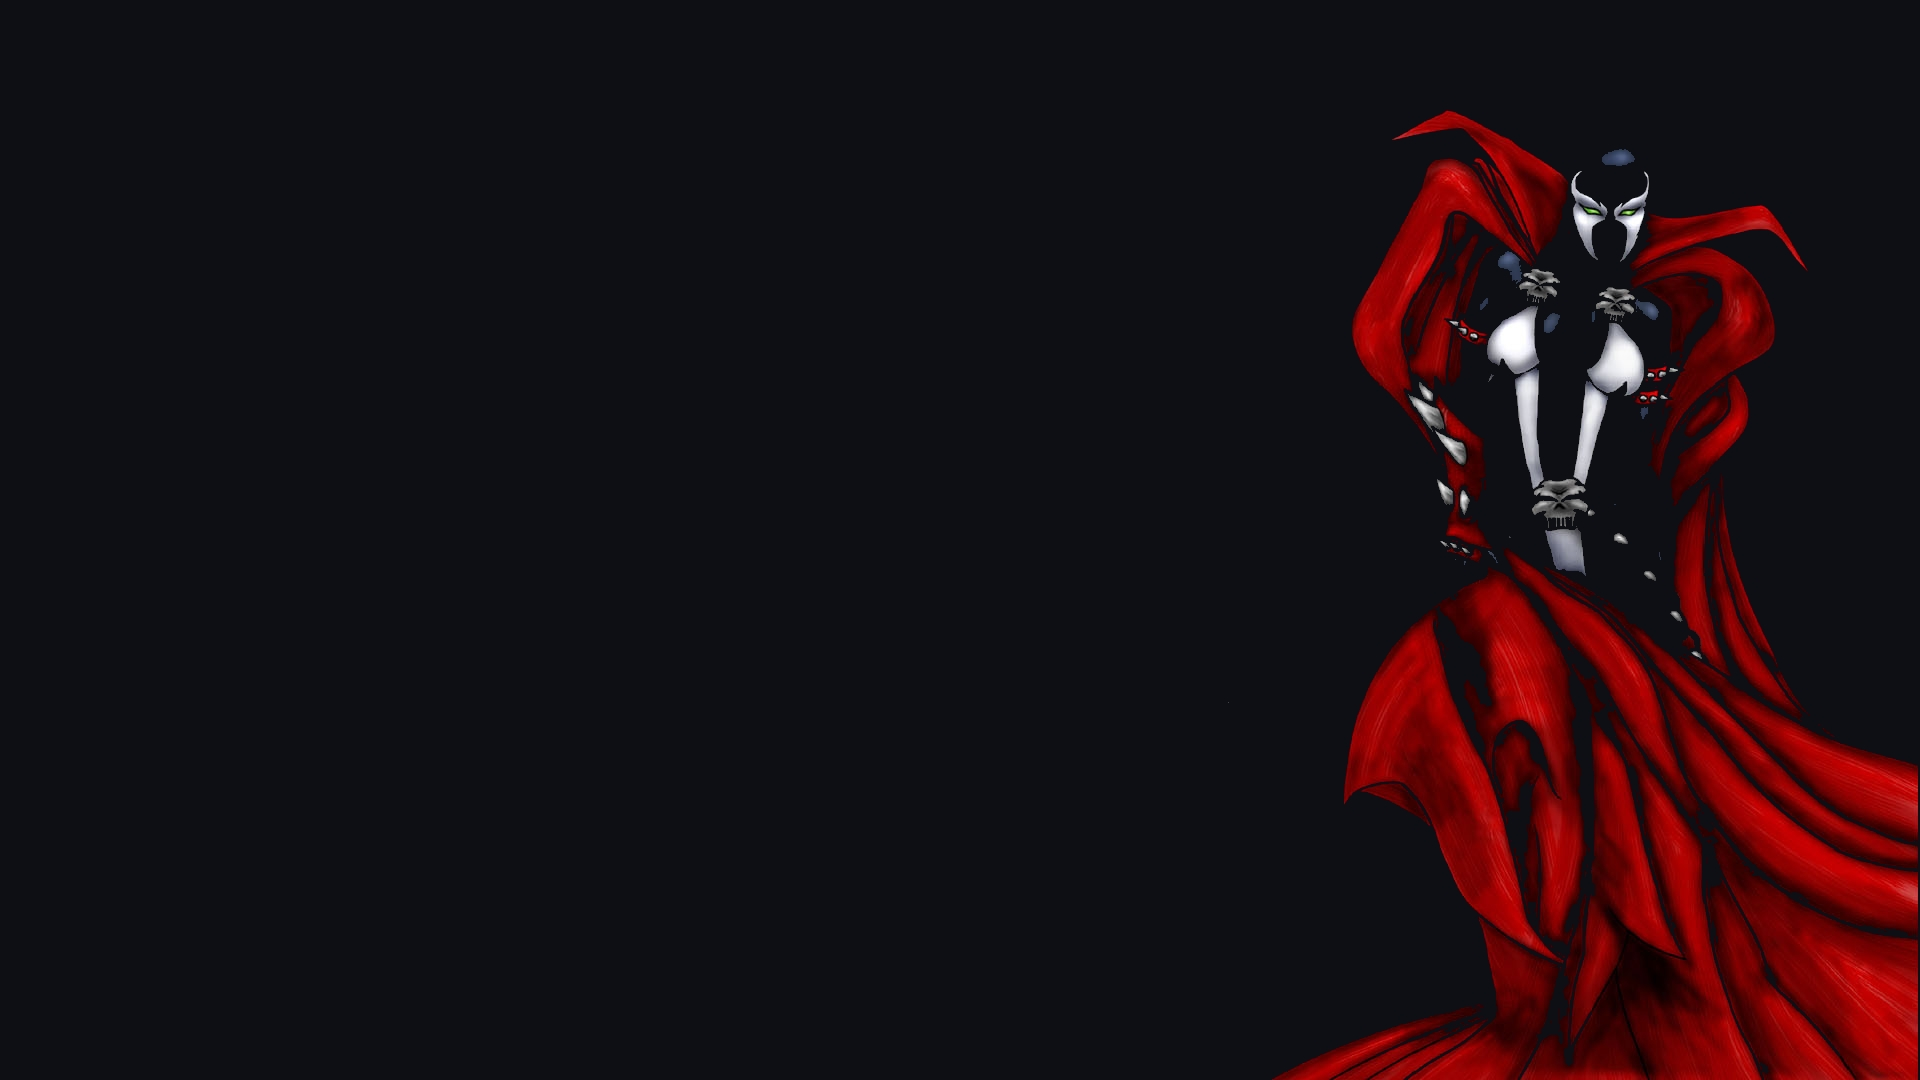 spawn wallpapers 1920x1080 - photo #17